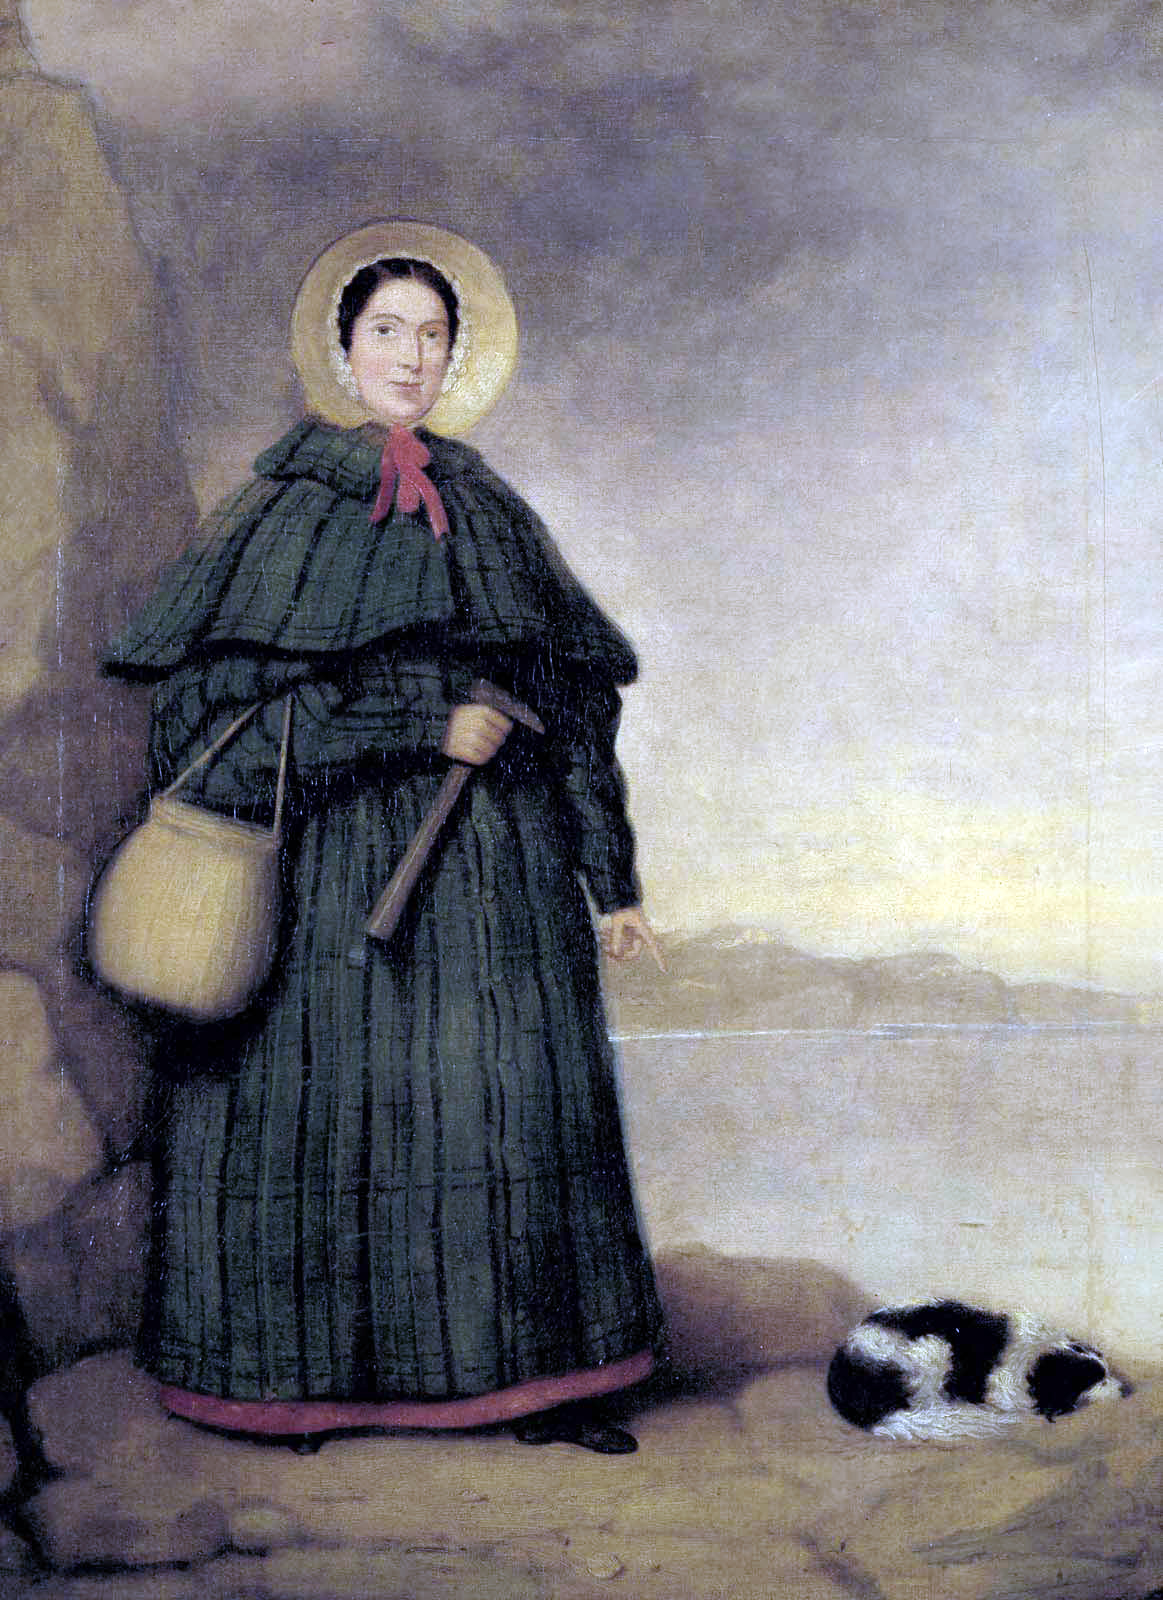 "Mary Anning, Fossil Hunter  She sells seashells on the seashoreThe shells she sells are seashells, I'm sureSo if she sells seashells on the seashoreThen I'm sure she sells seashore shells. - about Mary Anning. Mary Anning was a 19th century fossil collector, dealer, and paleontologist who became famous for a number of important finds she made in the Jurassic marine fossil beds at Lyme Regis, Dorset, where she lived. Fossil collecting was in vogue in the early 19th century, at first as a pastime, but gradually transforming into a science as the importance of fossils to geology and biology was understood. Anning's work contributed to fundamental changes that occurred during her lifetime in scientific thinking about prehistoric life and the history of the Earth. Anning searched for fossils particularly during the winter when landslides exposed new fossils that had to be collected quickly before they were lost to the sea. It was dangerous work, and she nearly lost her life in 1833 during a landslide that killed her dog. Her discoveries included the first ichthyosaur skeleton to be correctly identified, which she found when she was just twelve; the first plesiosaur skeletons ever found; the first pterosaur skeleton located outside Germany; and important fish fossils. Her observations played a key role in the discovery that coprolites were fossilised faeces. Anning's gender and social class prevented her from fully participating in the scientific community of the period, dominated as it was by wealthy gentlemen. However, she became well known in geological circles the world over, and was consulted on all issues of anatomy and fossil collecting. Nonetheless, as a woman, she was not eligible to join the Geological Society of London, and she did not always receive full credit for her scientific contributions. Indeed, she wrote in a letter: ""The world has used me so unkindly, I fear it has made me suspicious of everyone."""